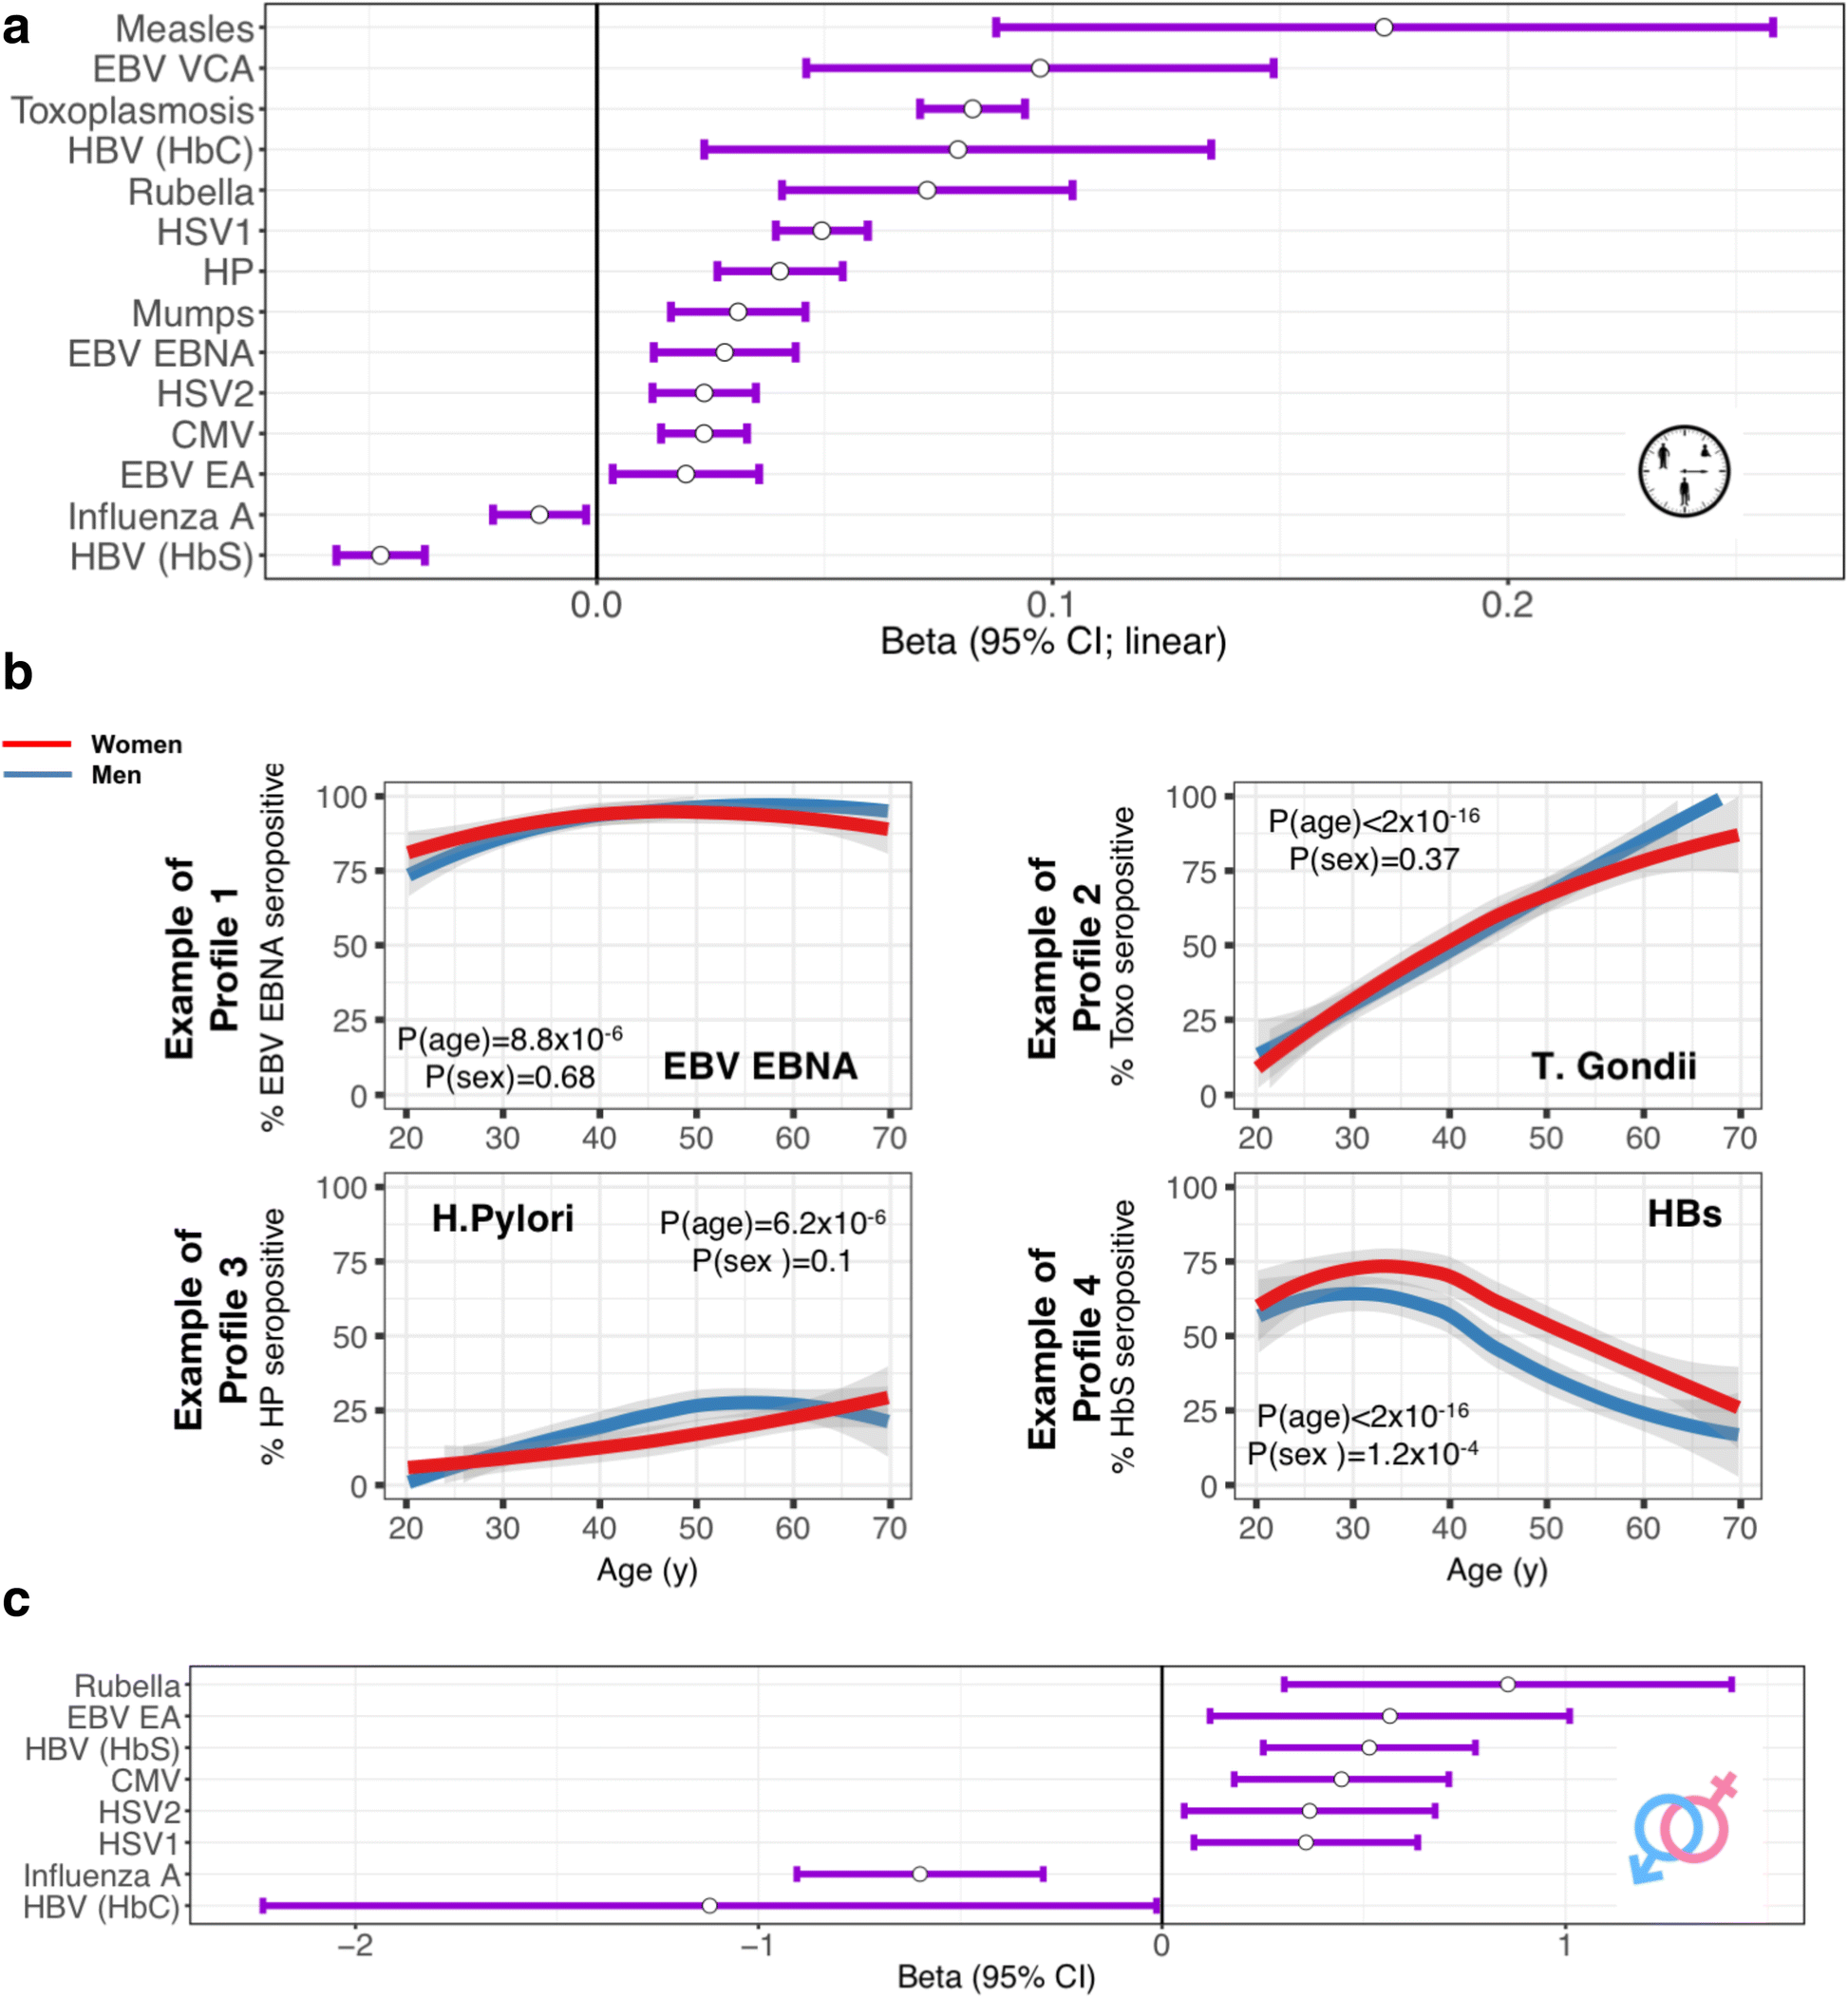 Human genetic variants and age are the strongest predictors of